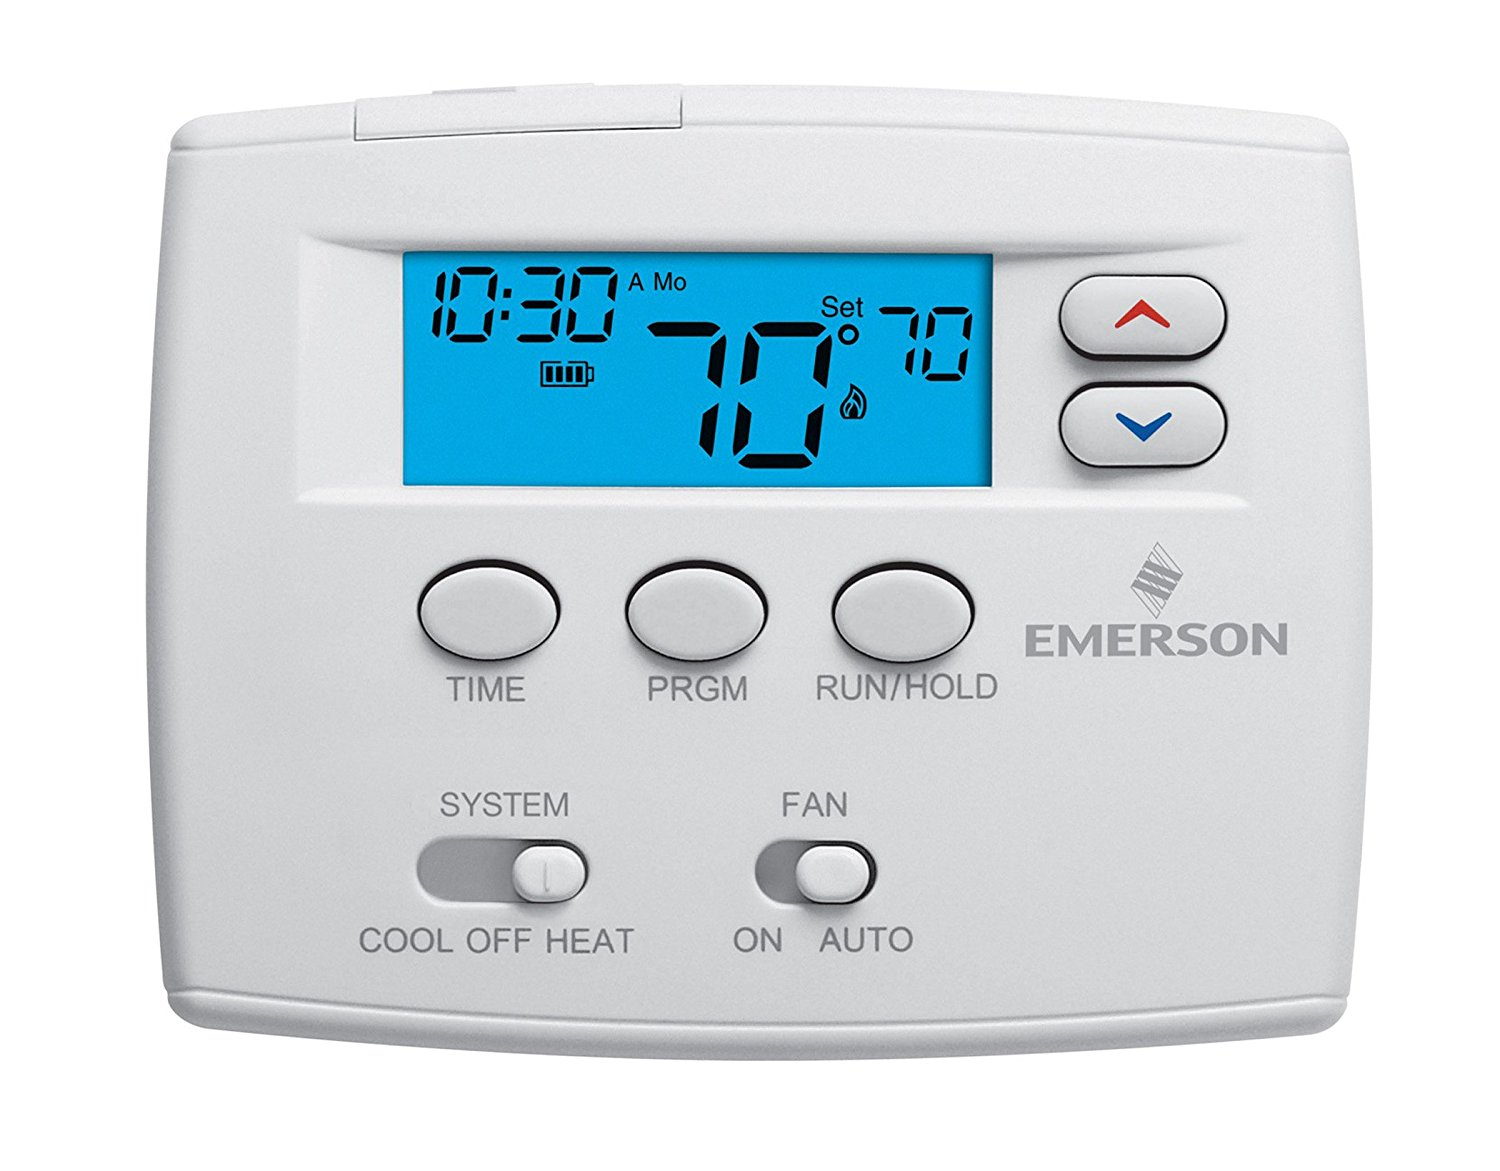 buy emerson 1f80 0224 single stage 24 hour programmable thermostat rh guide  alibaba com emerson 1f80-0471 thermostat user manual Emerson Digital  Thermostat ...